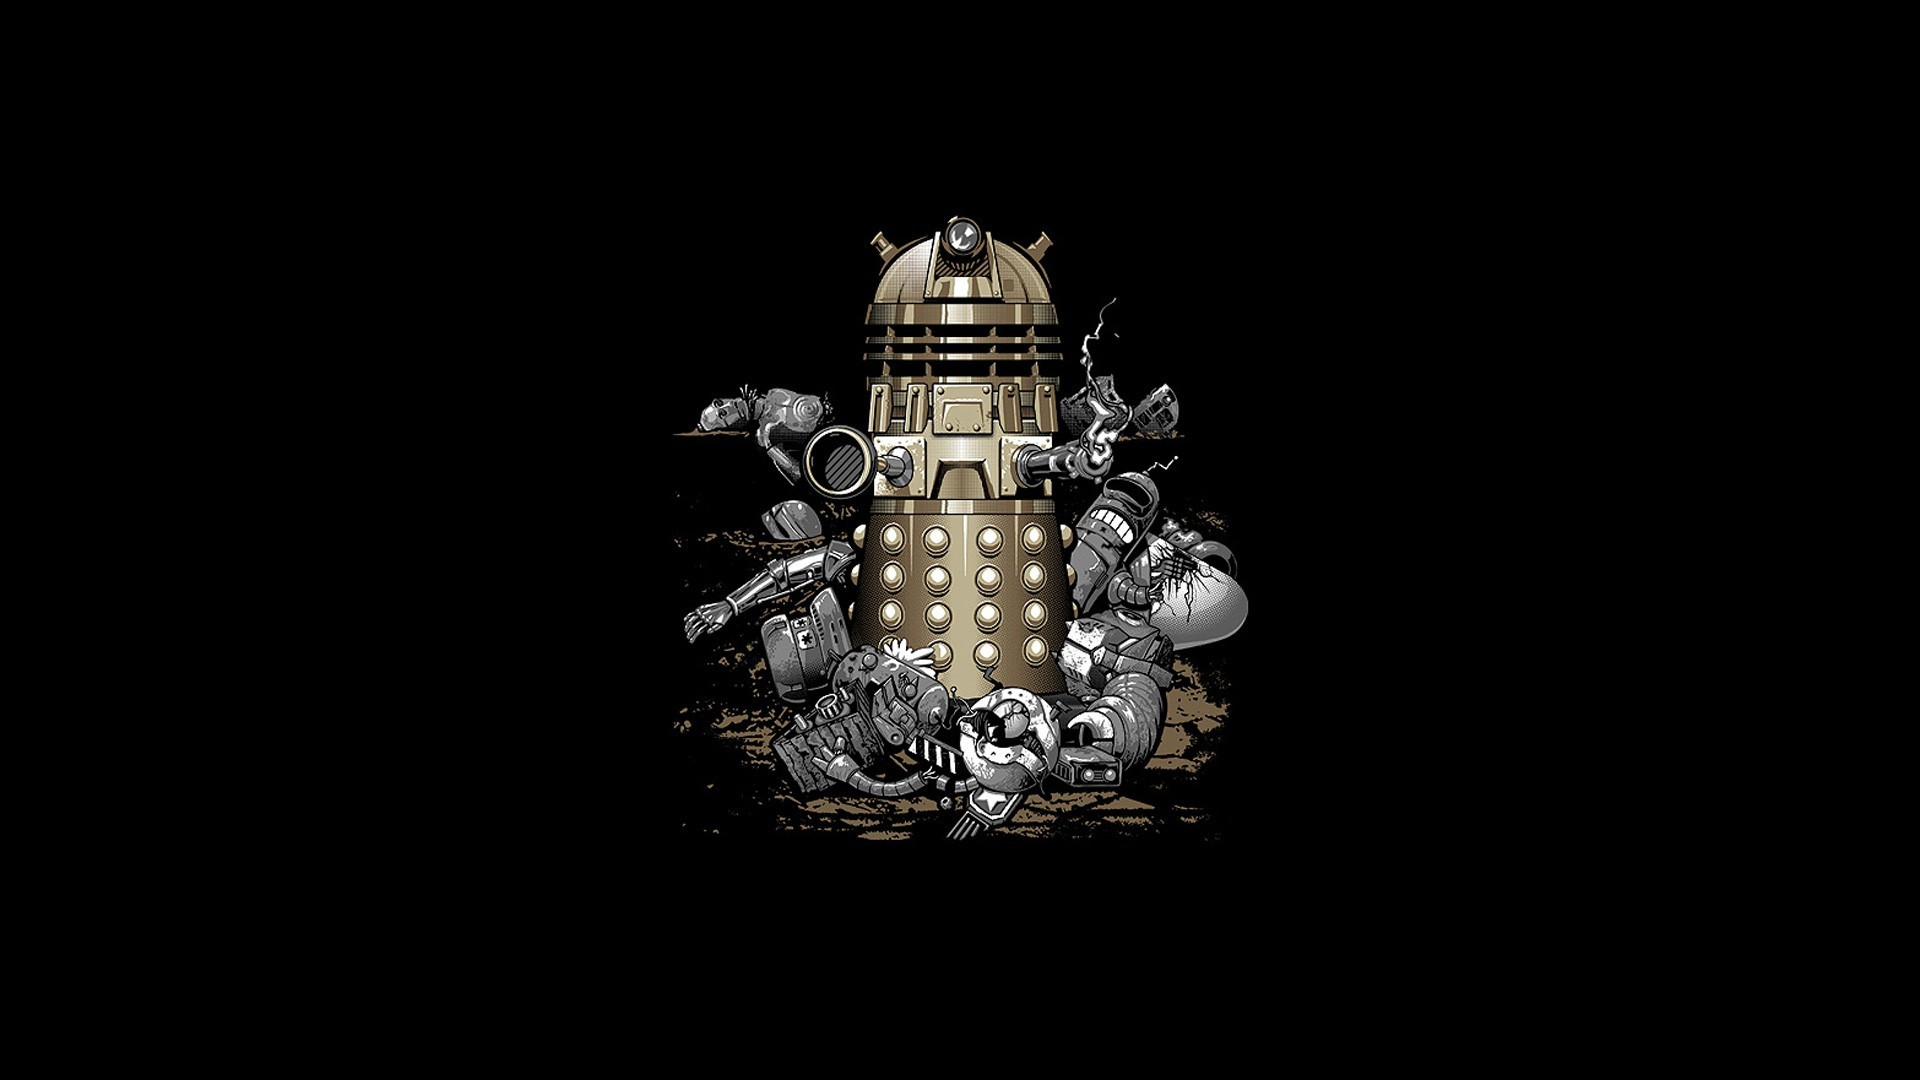 1920x1080 wallpaper Doctor Who · Daleks